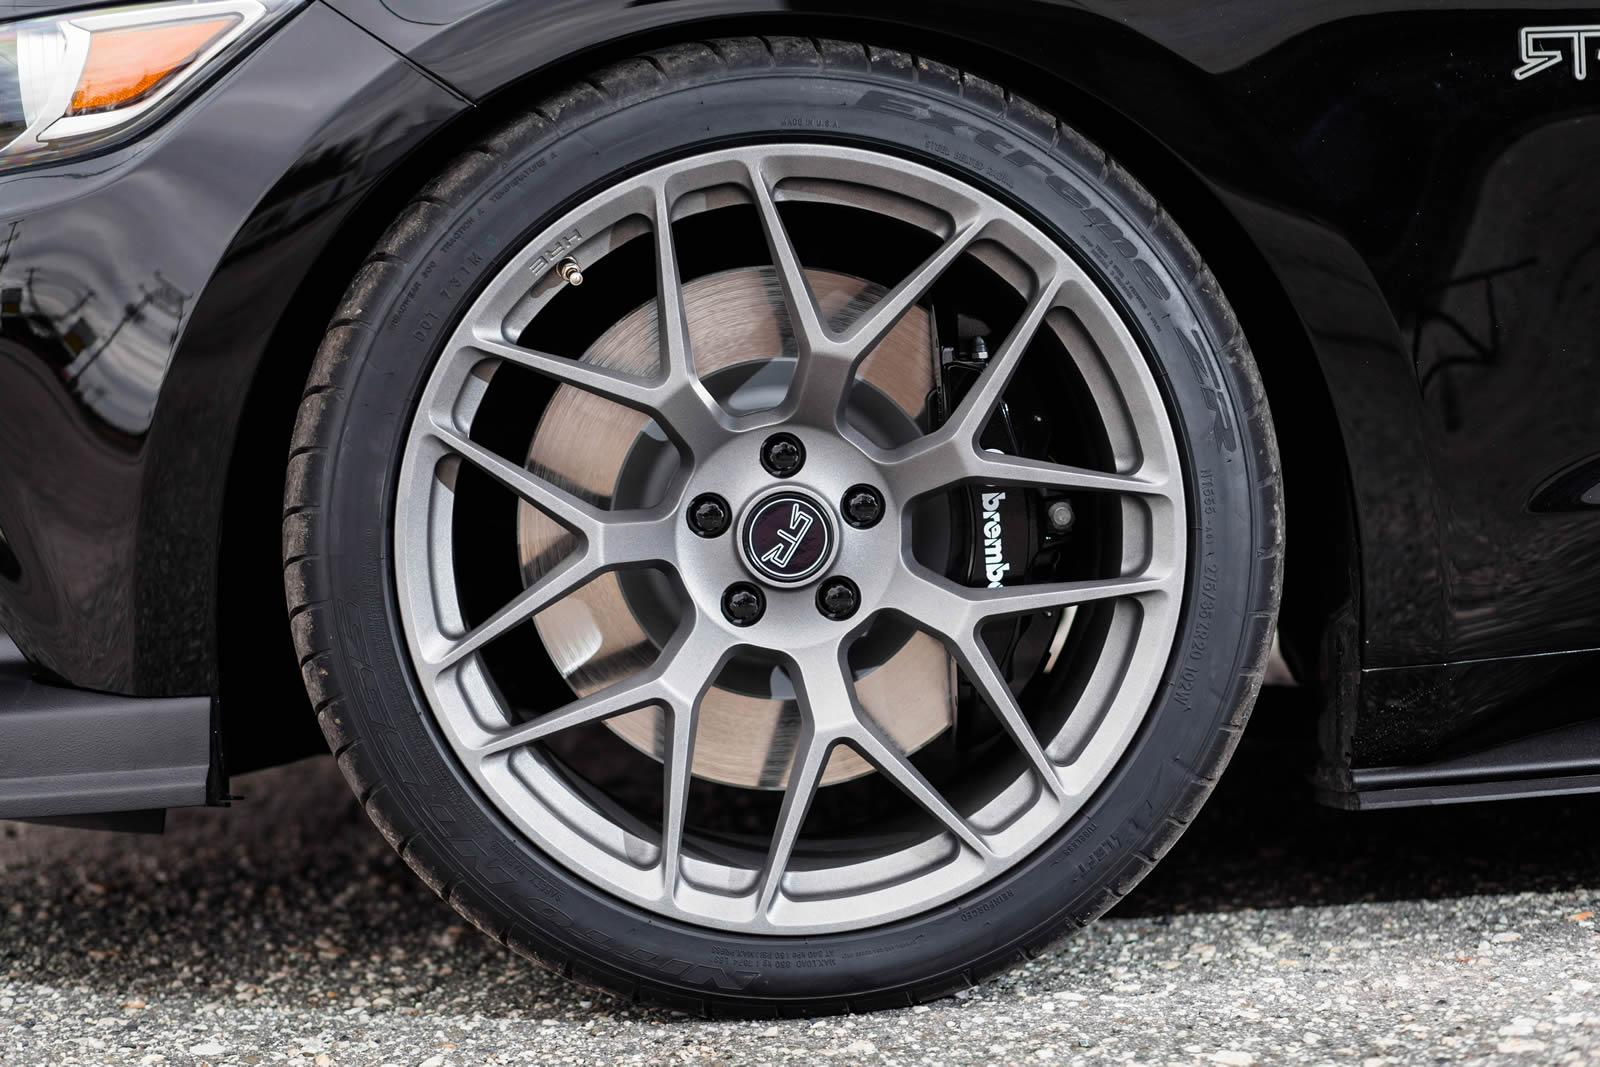 2015 Ford Mustang Rtr Detail Photo Wheel Brembo Brakes